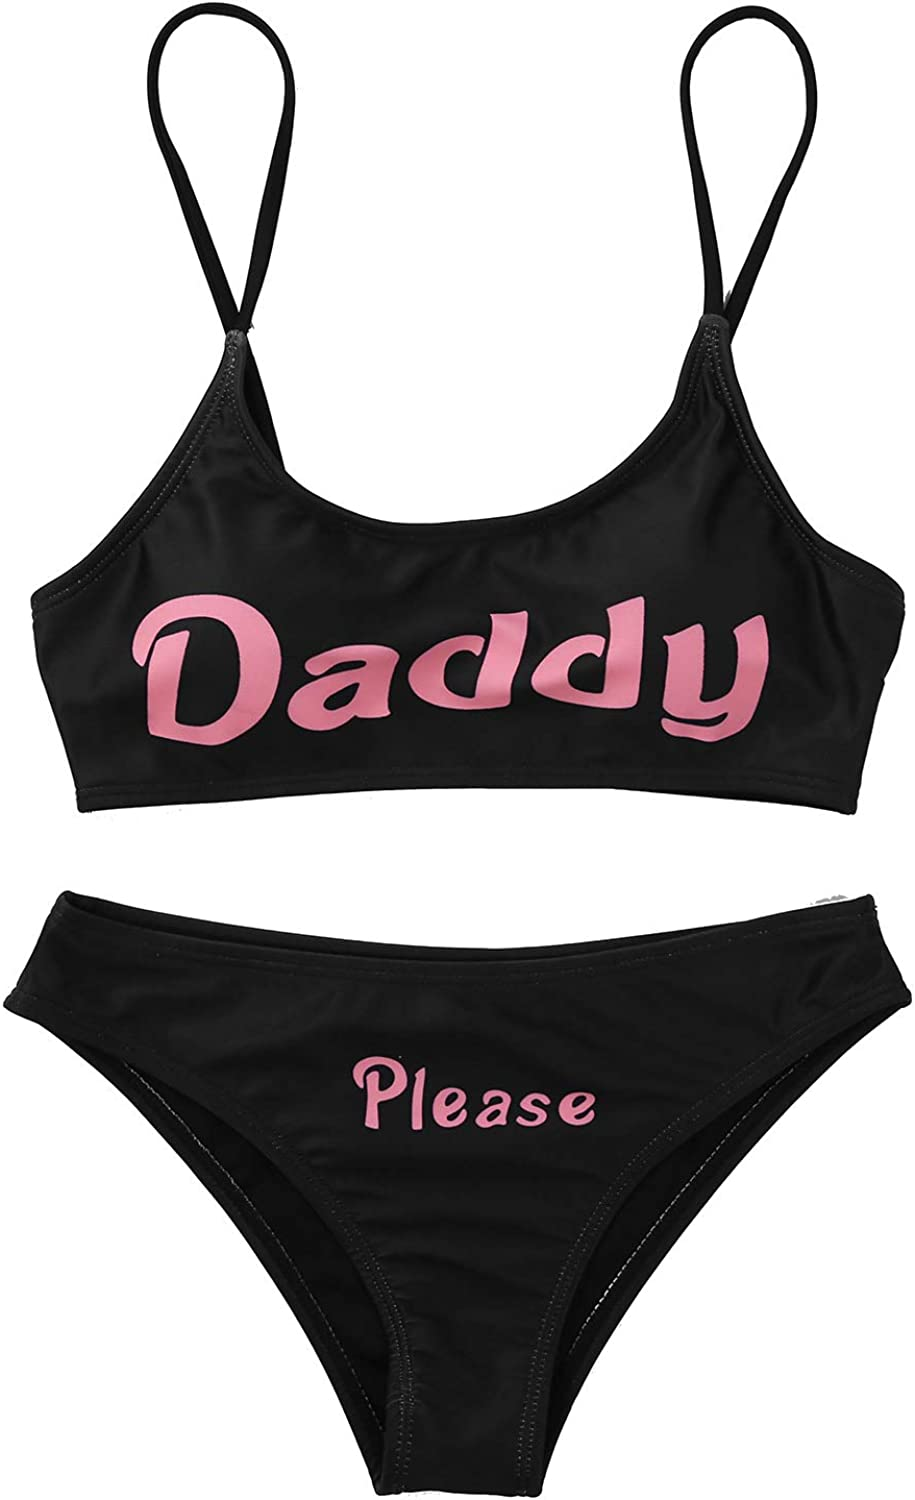 Choomomo Womens 2 Pieces Yes Daddy Bra Cheeky Thongs Lingerie Set Anime Cosplay Outfits